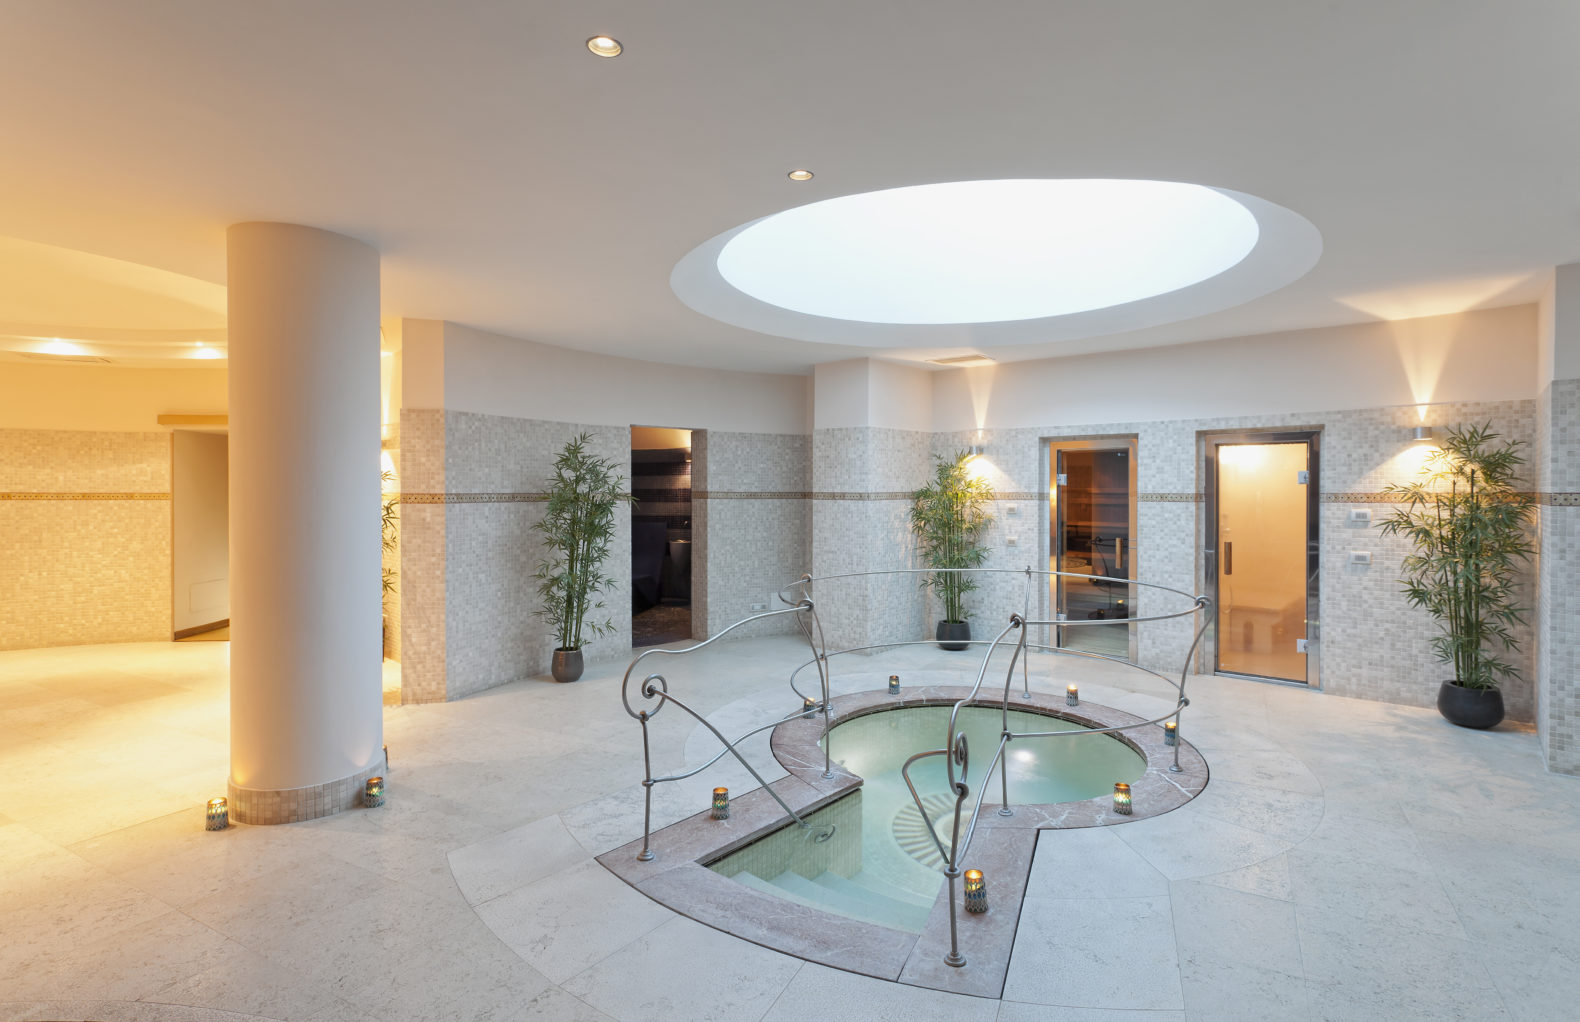 wet-zone-spa-treatment-area-sauna-terme-manzi-italy